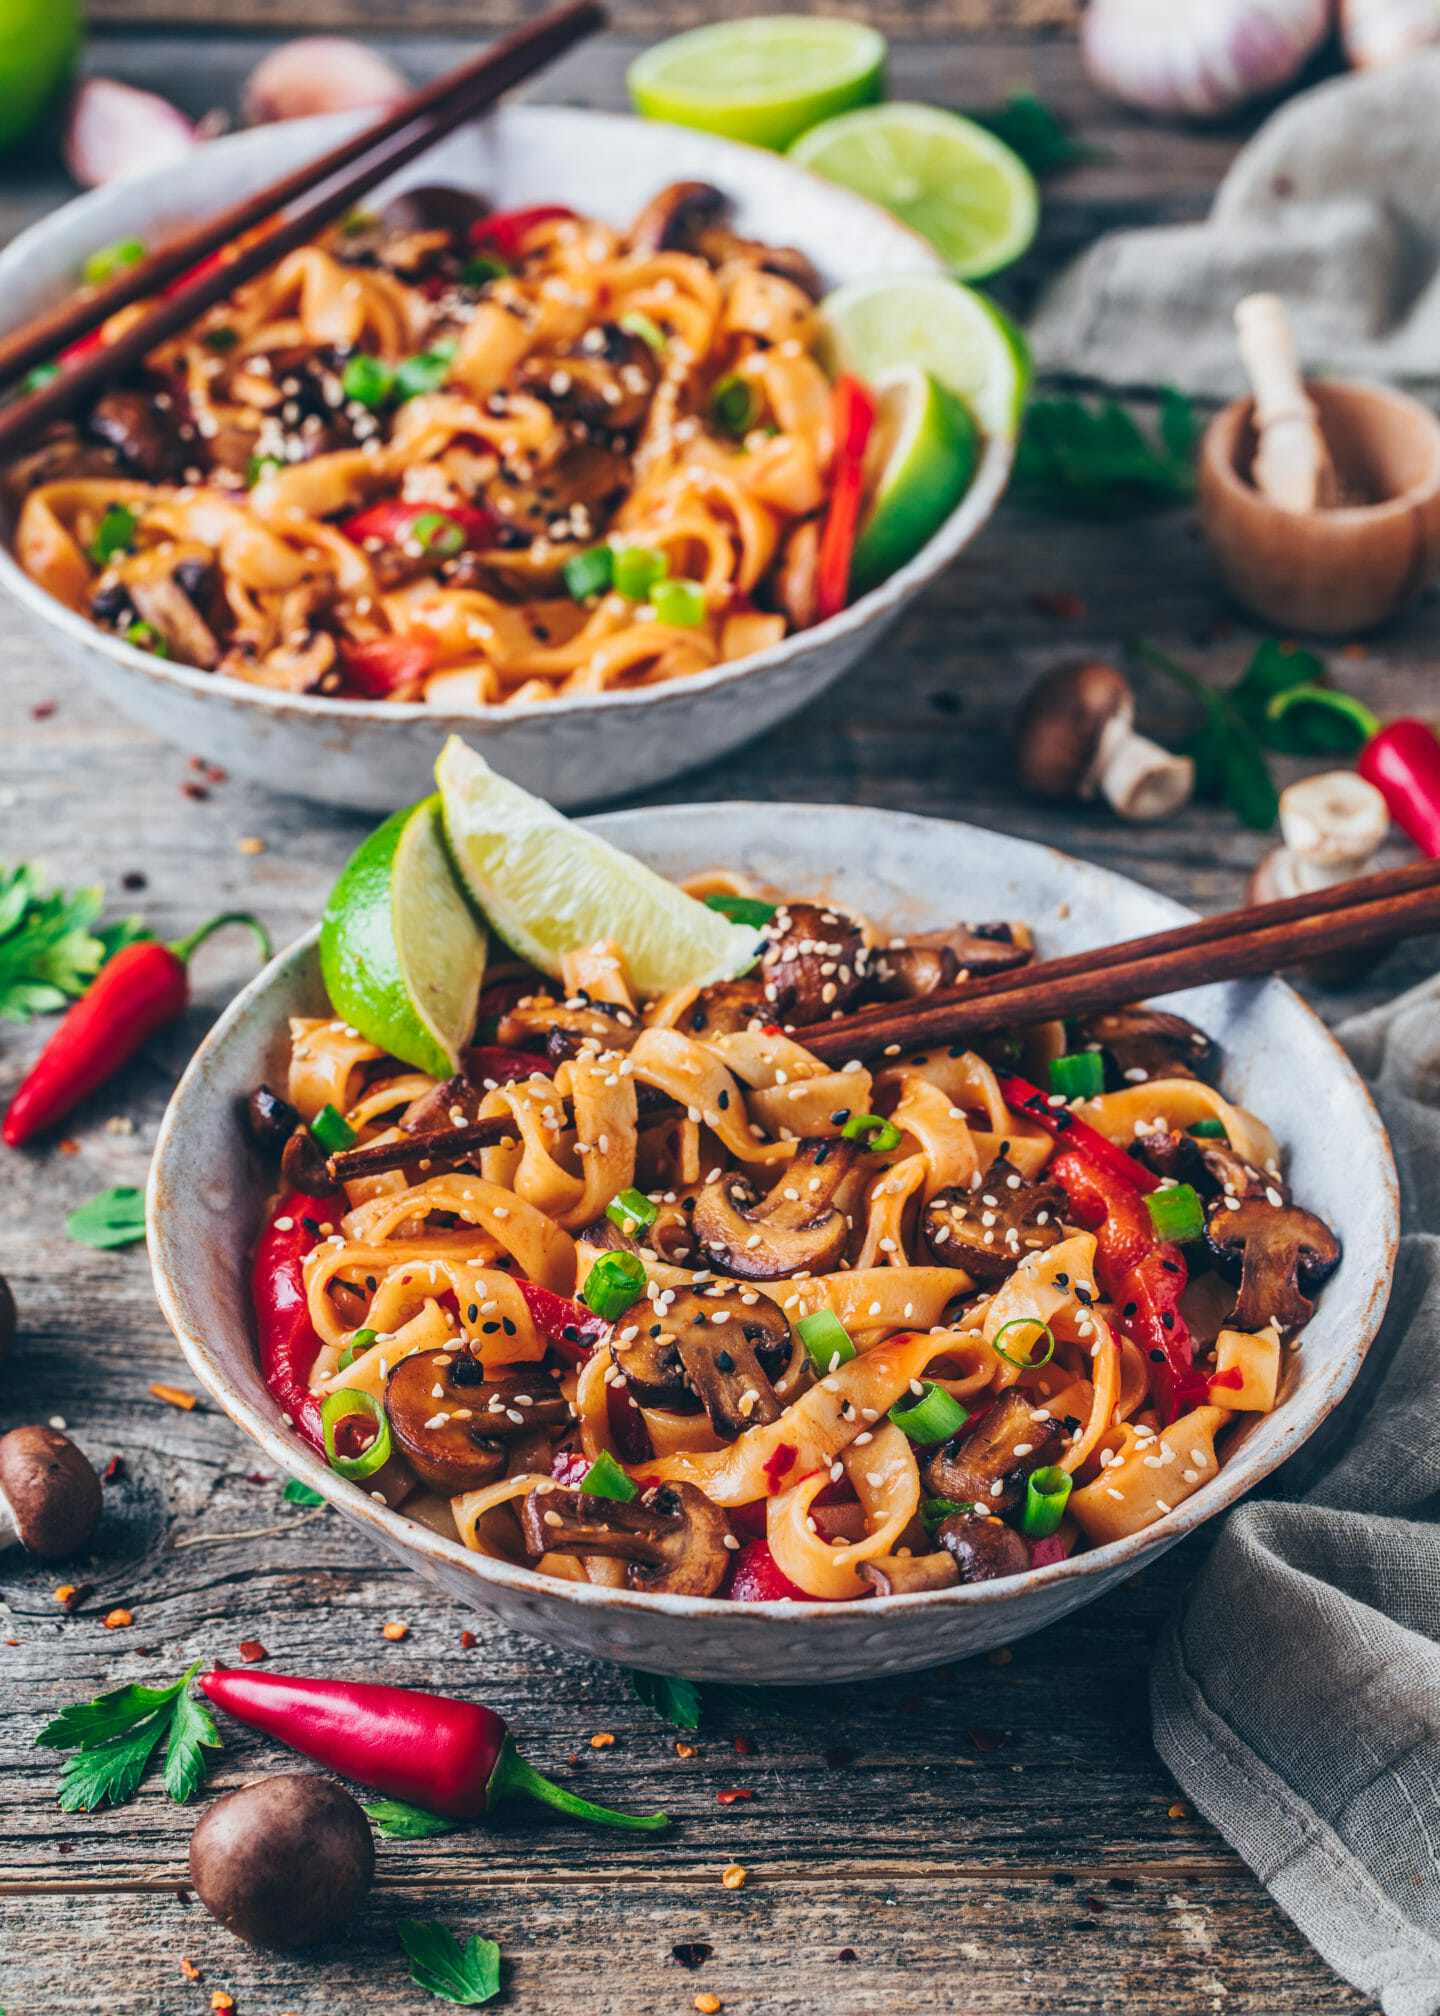 Asian Thai Noodles with mushrooms, garlic, chili, bell peppers, coconut milk, and limes